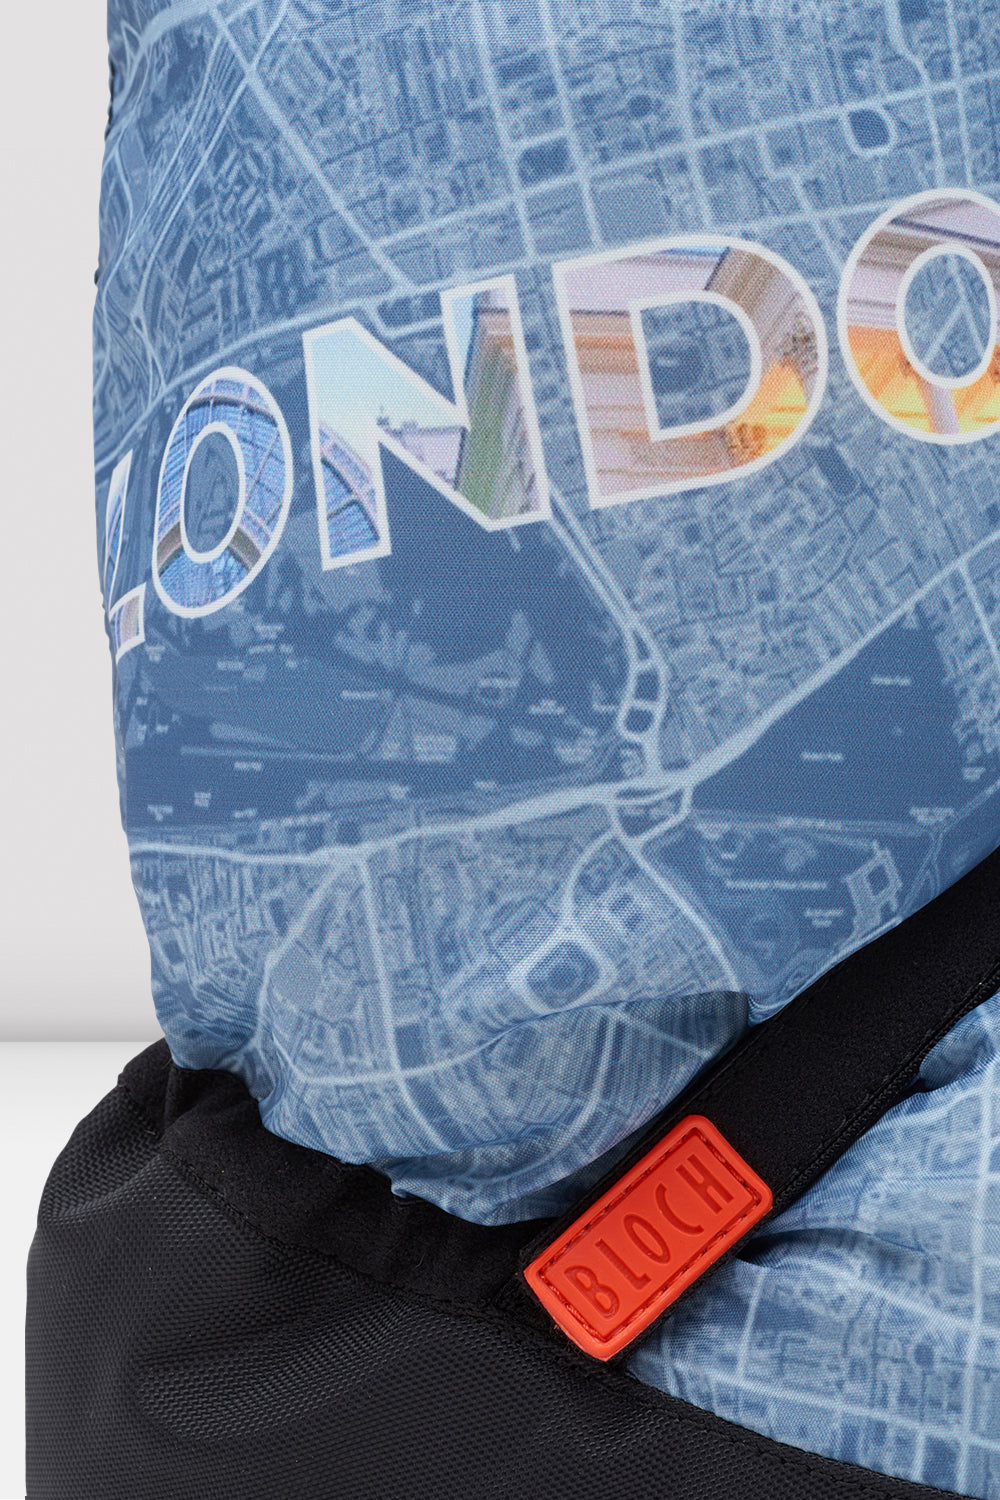 London City Map Multi-function Warm Up Booties